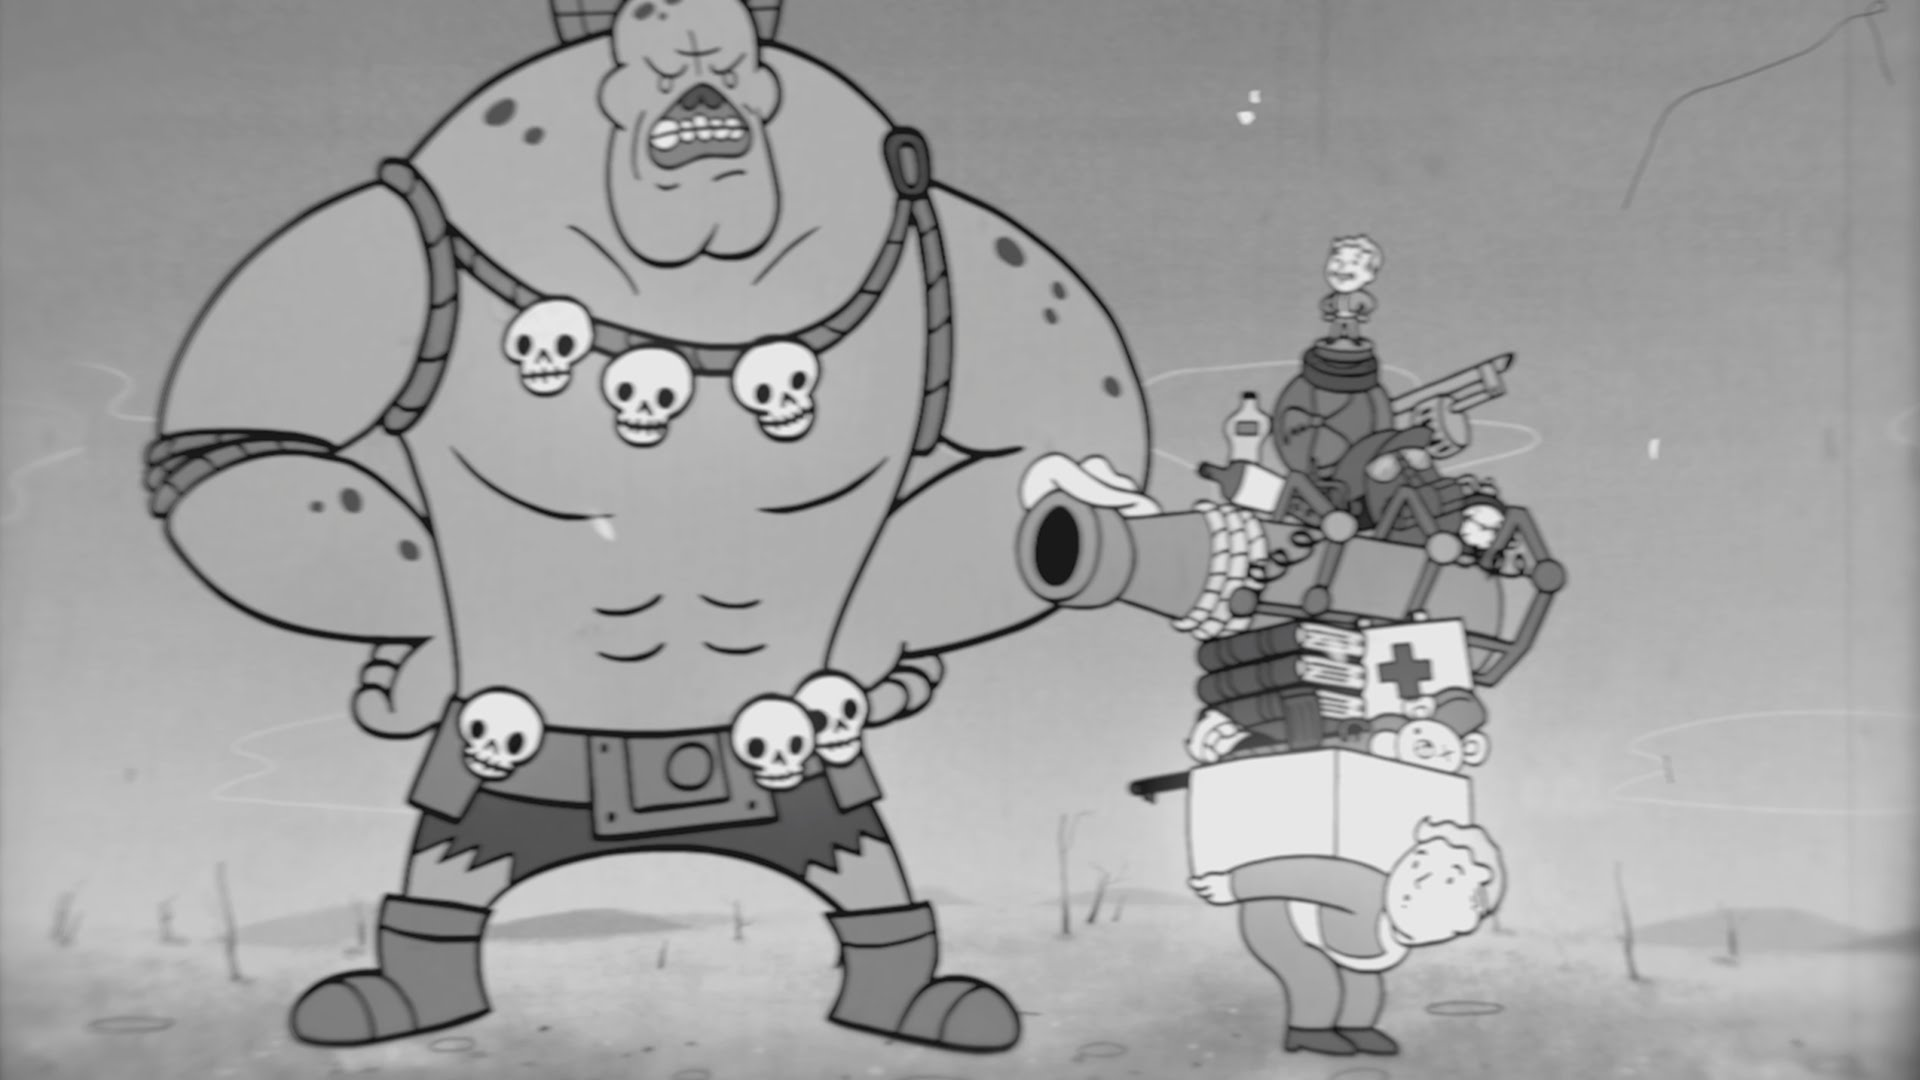 'Strength', Episode #1 of the 1950s Style Animated Educational Video Series for 'Fallout 4' S.P.E.C.I.A.L. Attributes